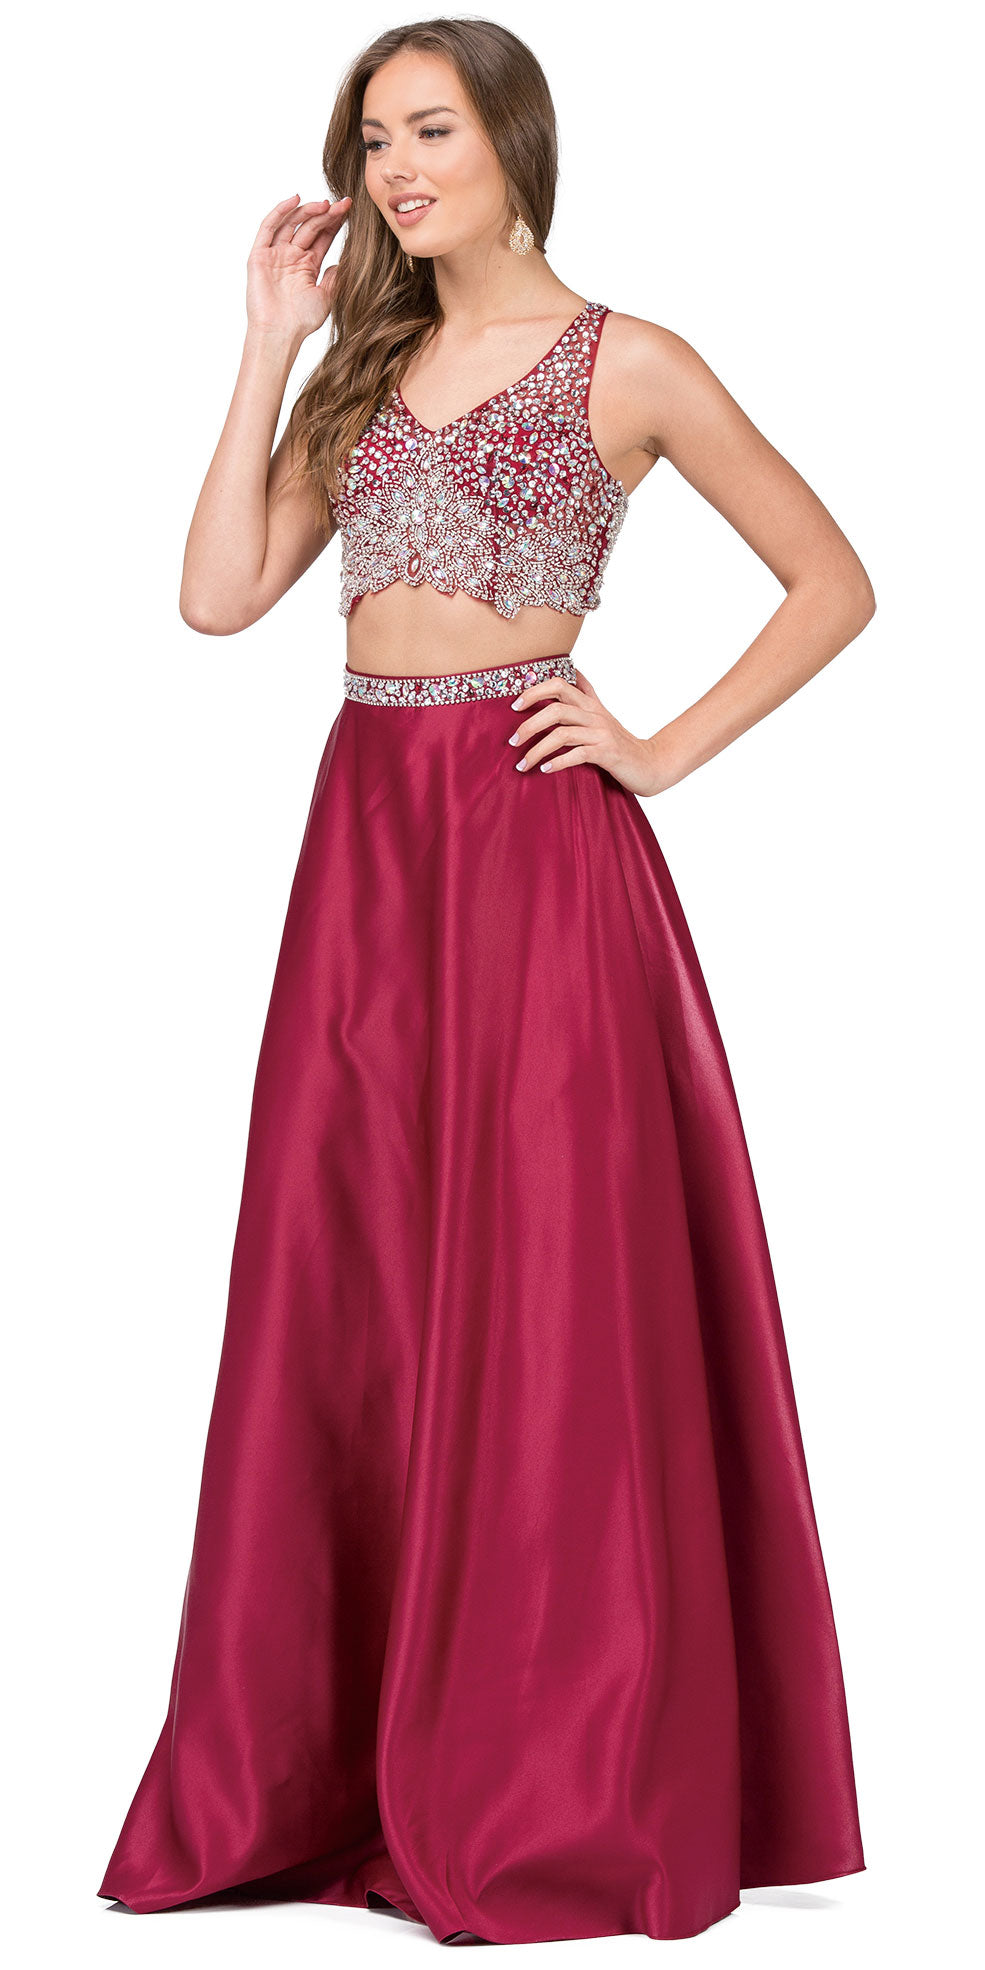 Main image of V-neck Bejeweled Top Long Satin Skirt Two Piece Prom Dress